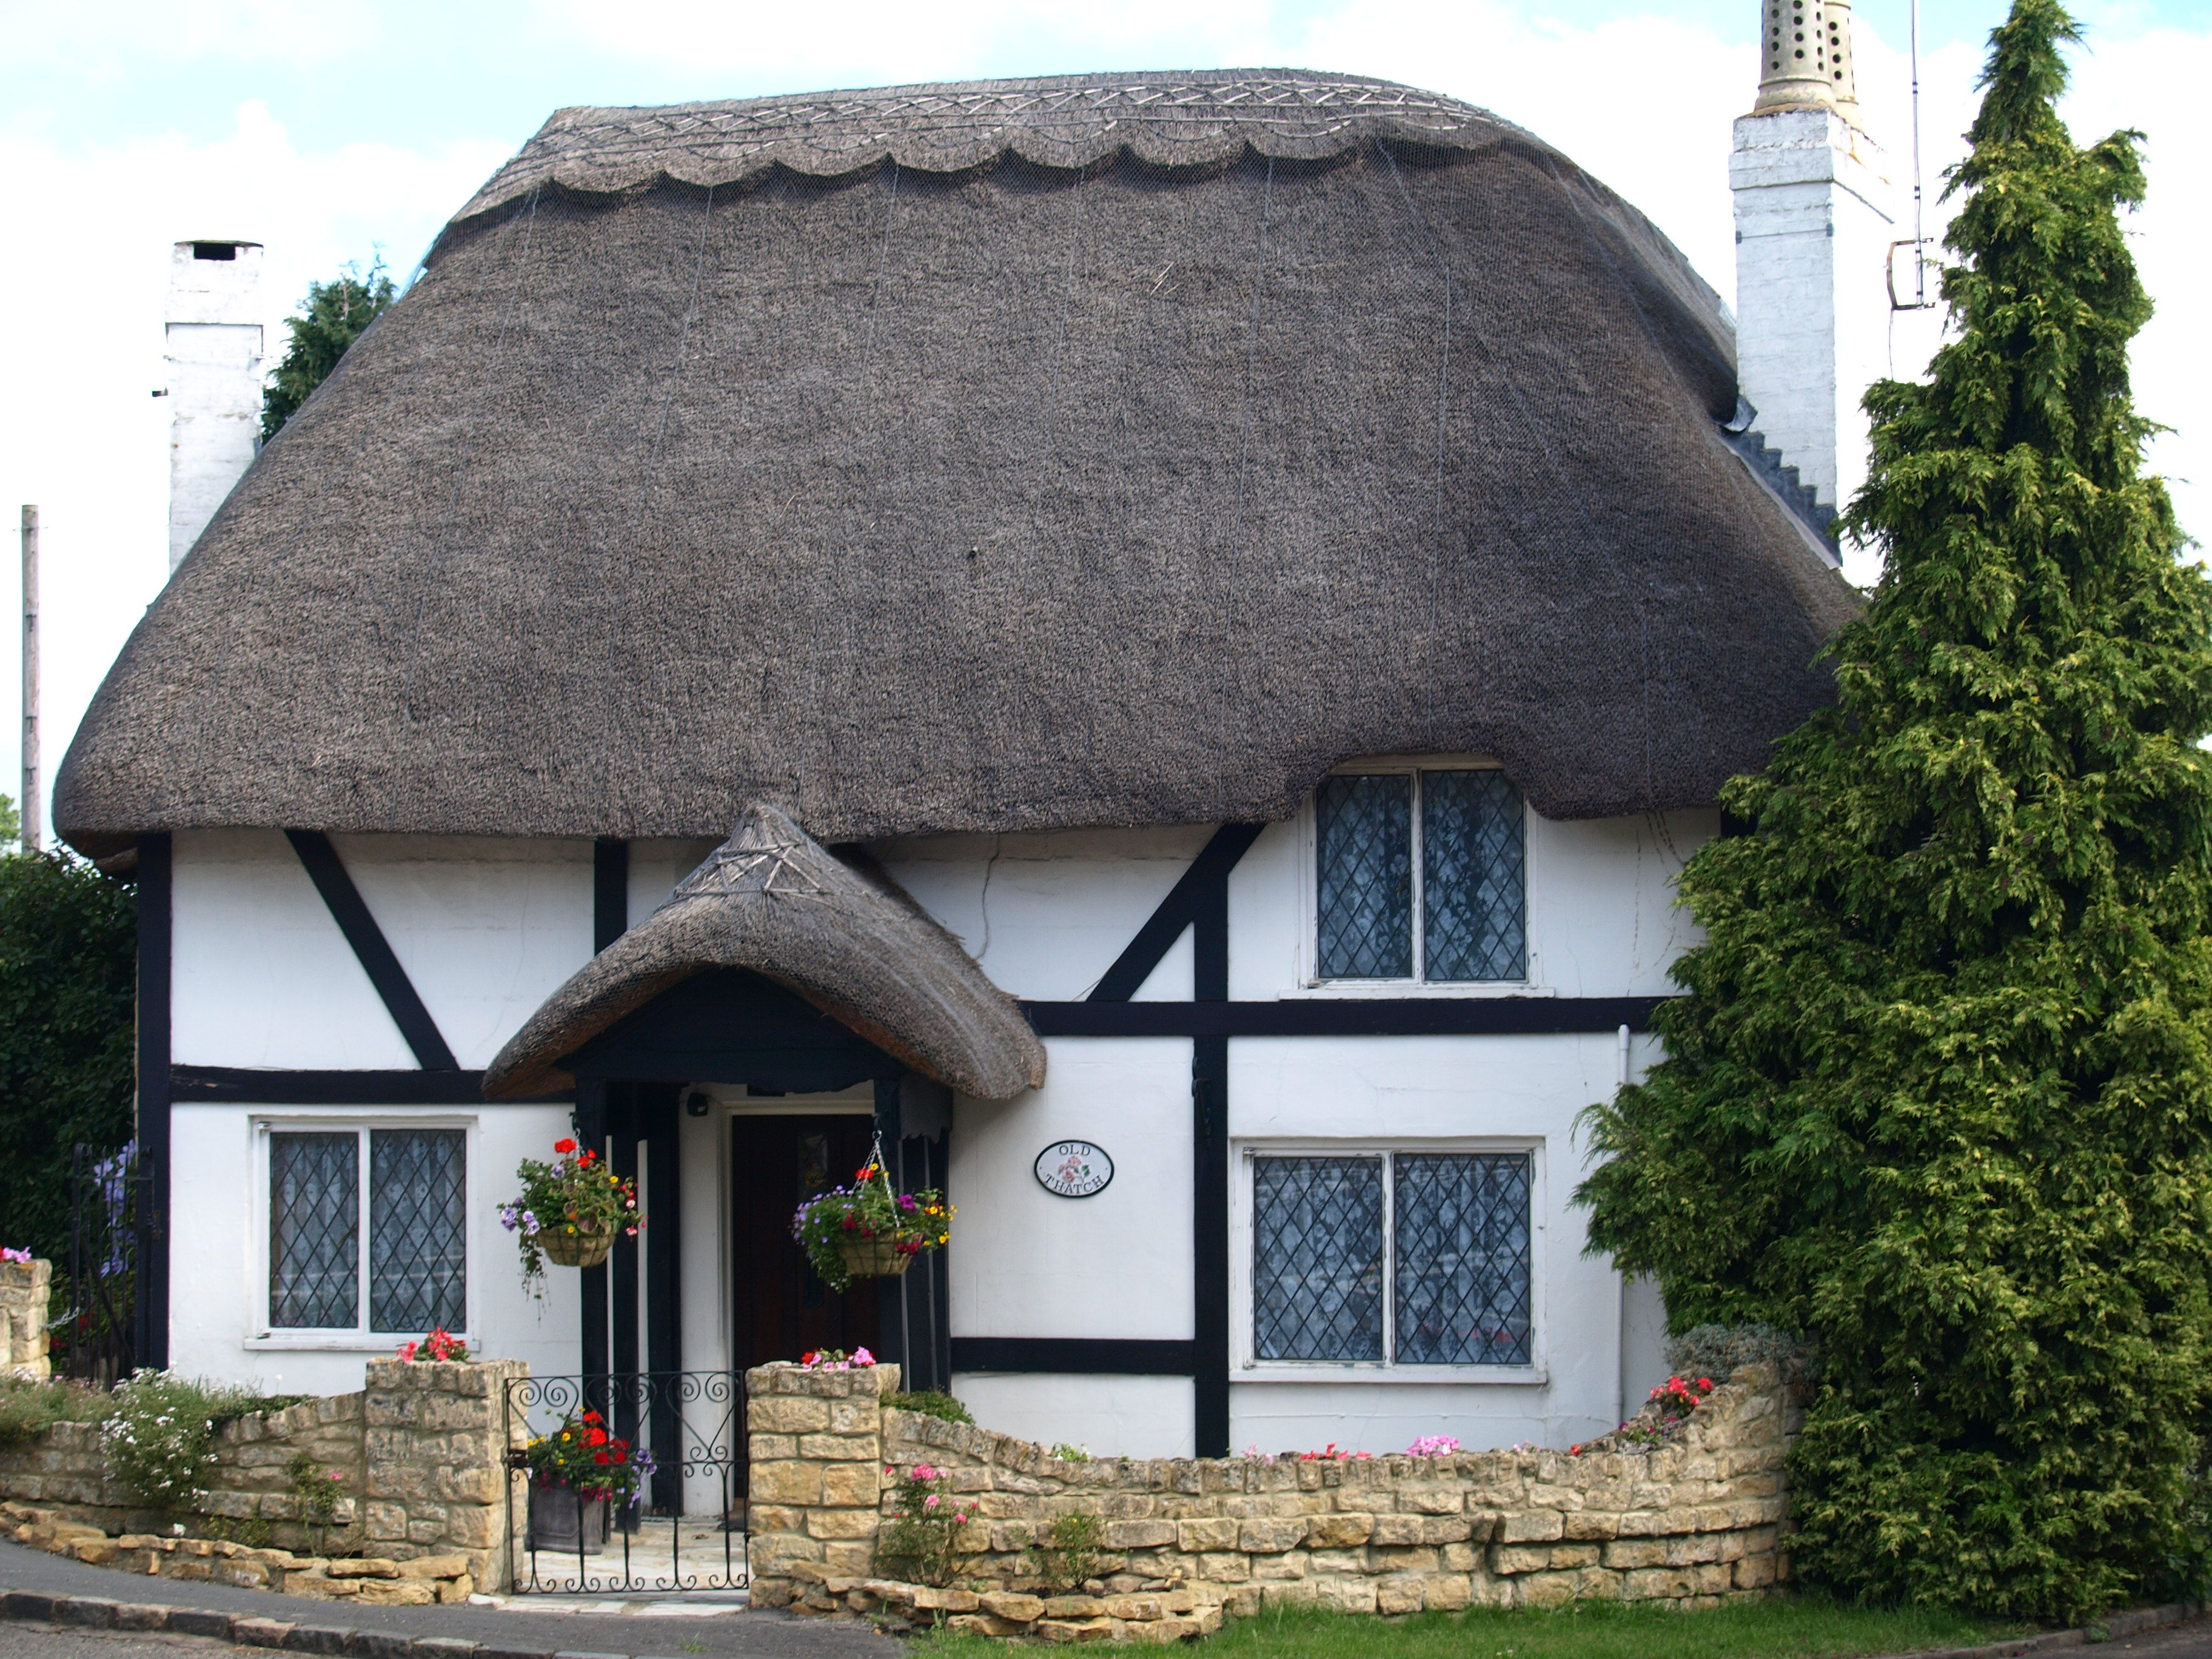 thatched roof england google search - Thatch Roof Designs